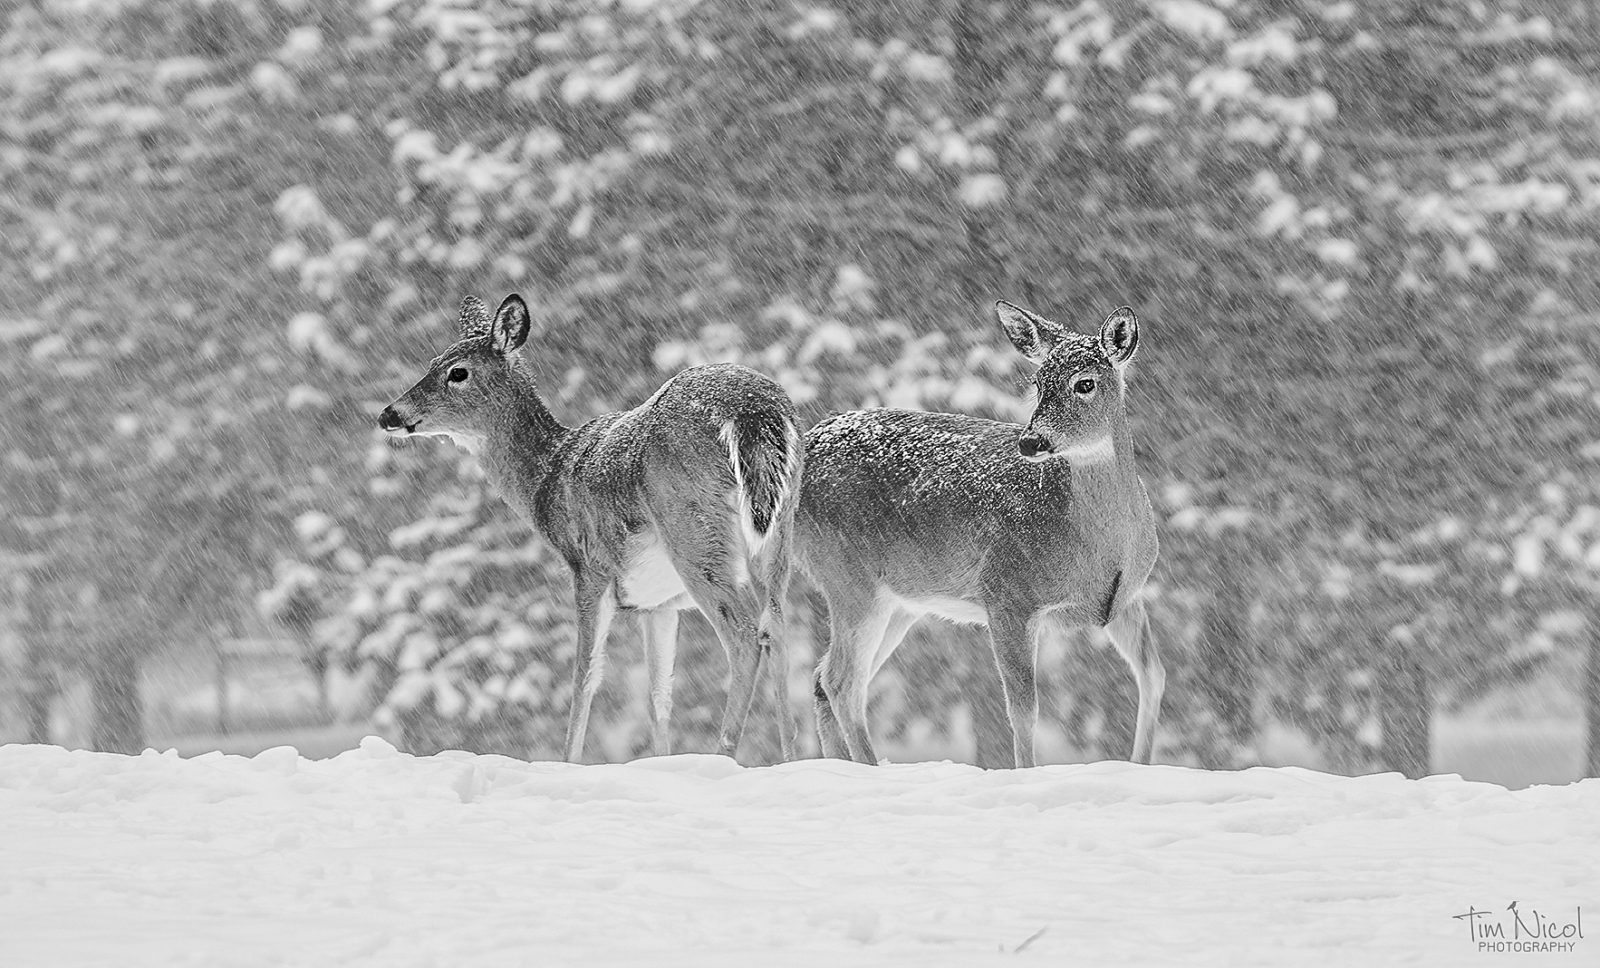 Whitetails in a Snowstorm